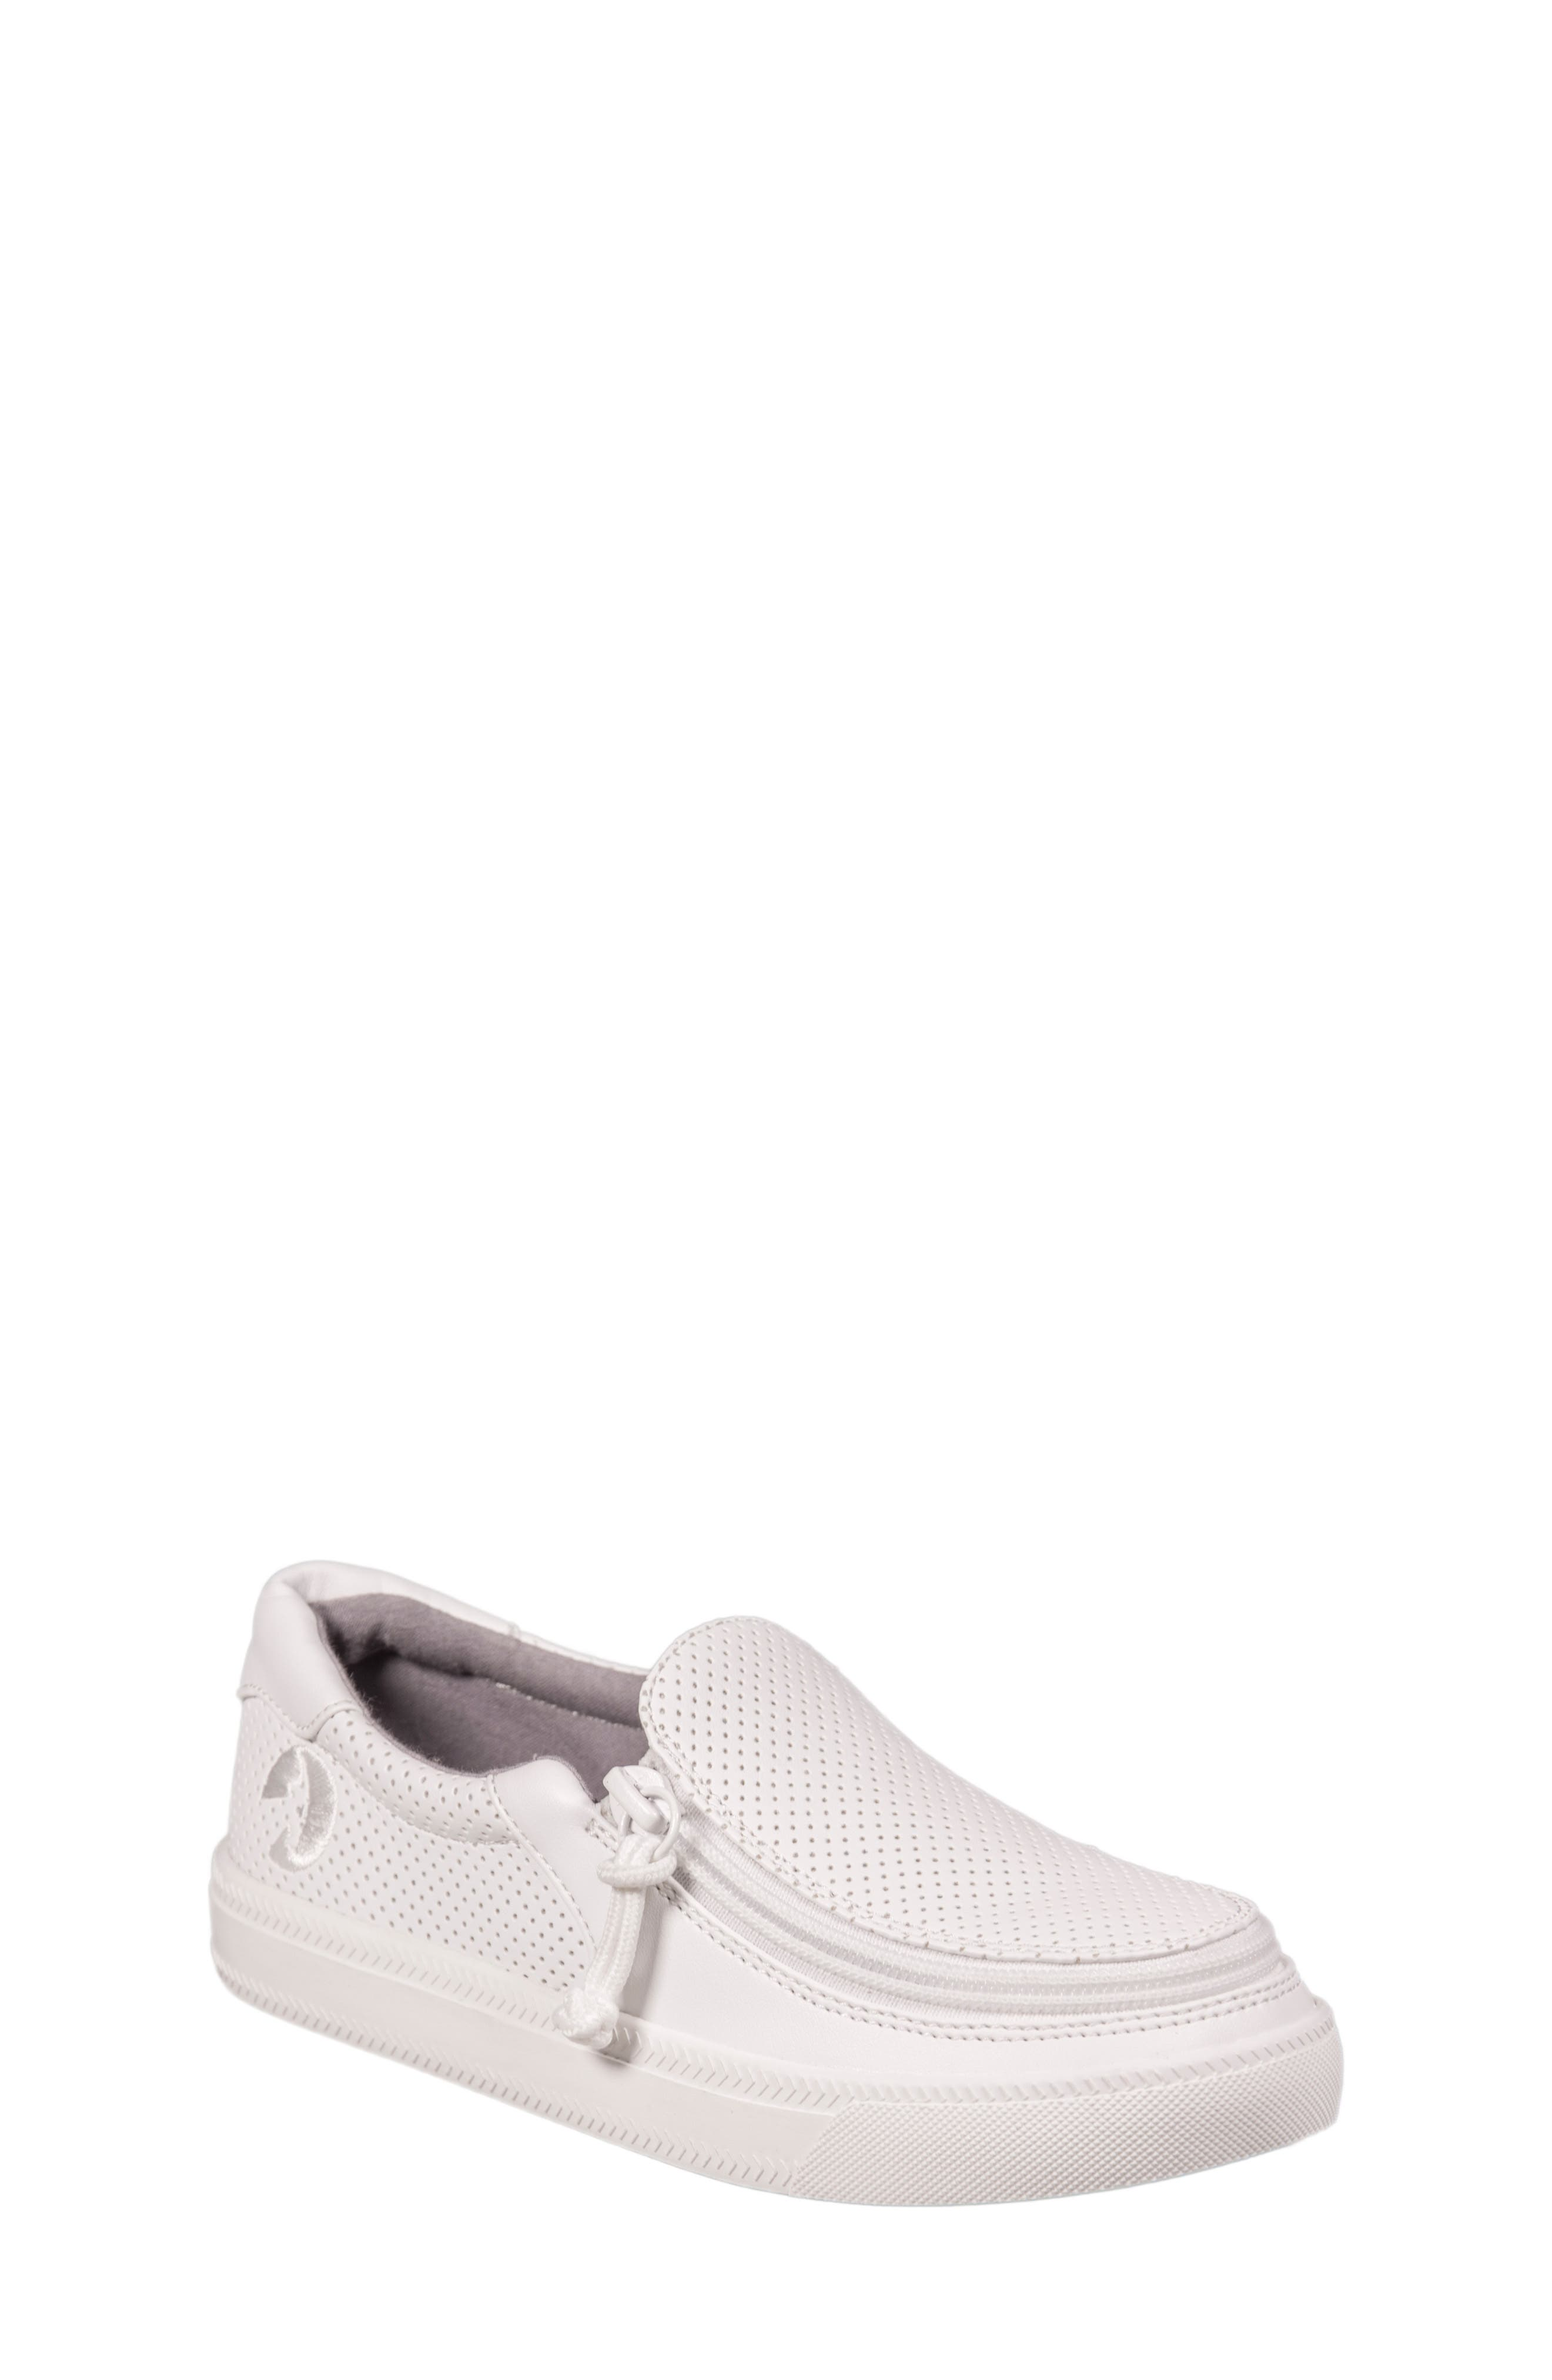 Zip Around Perforated Low Top Sneaker,                         Main,                         color, White Perforated